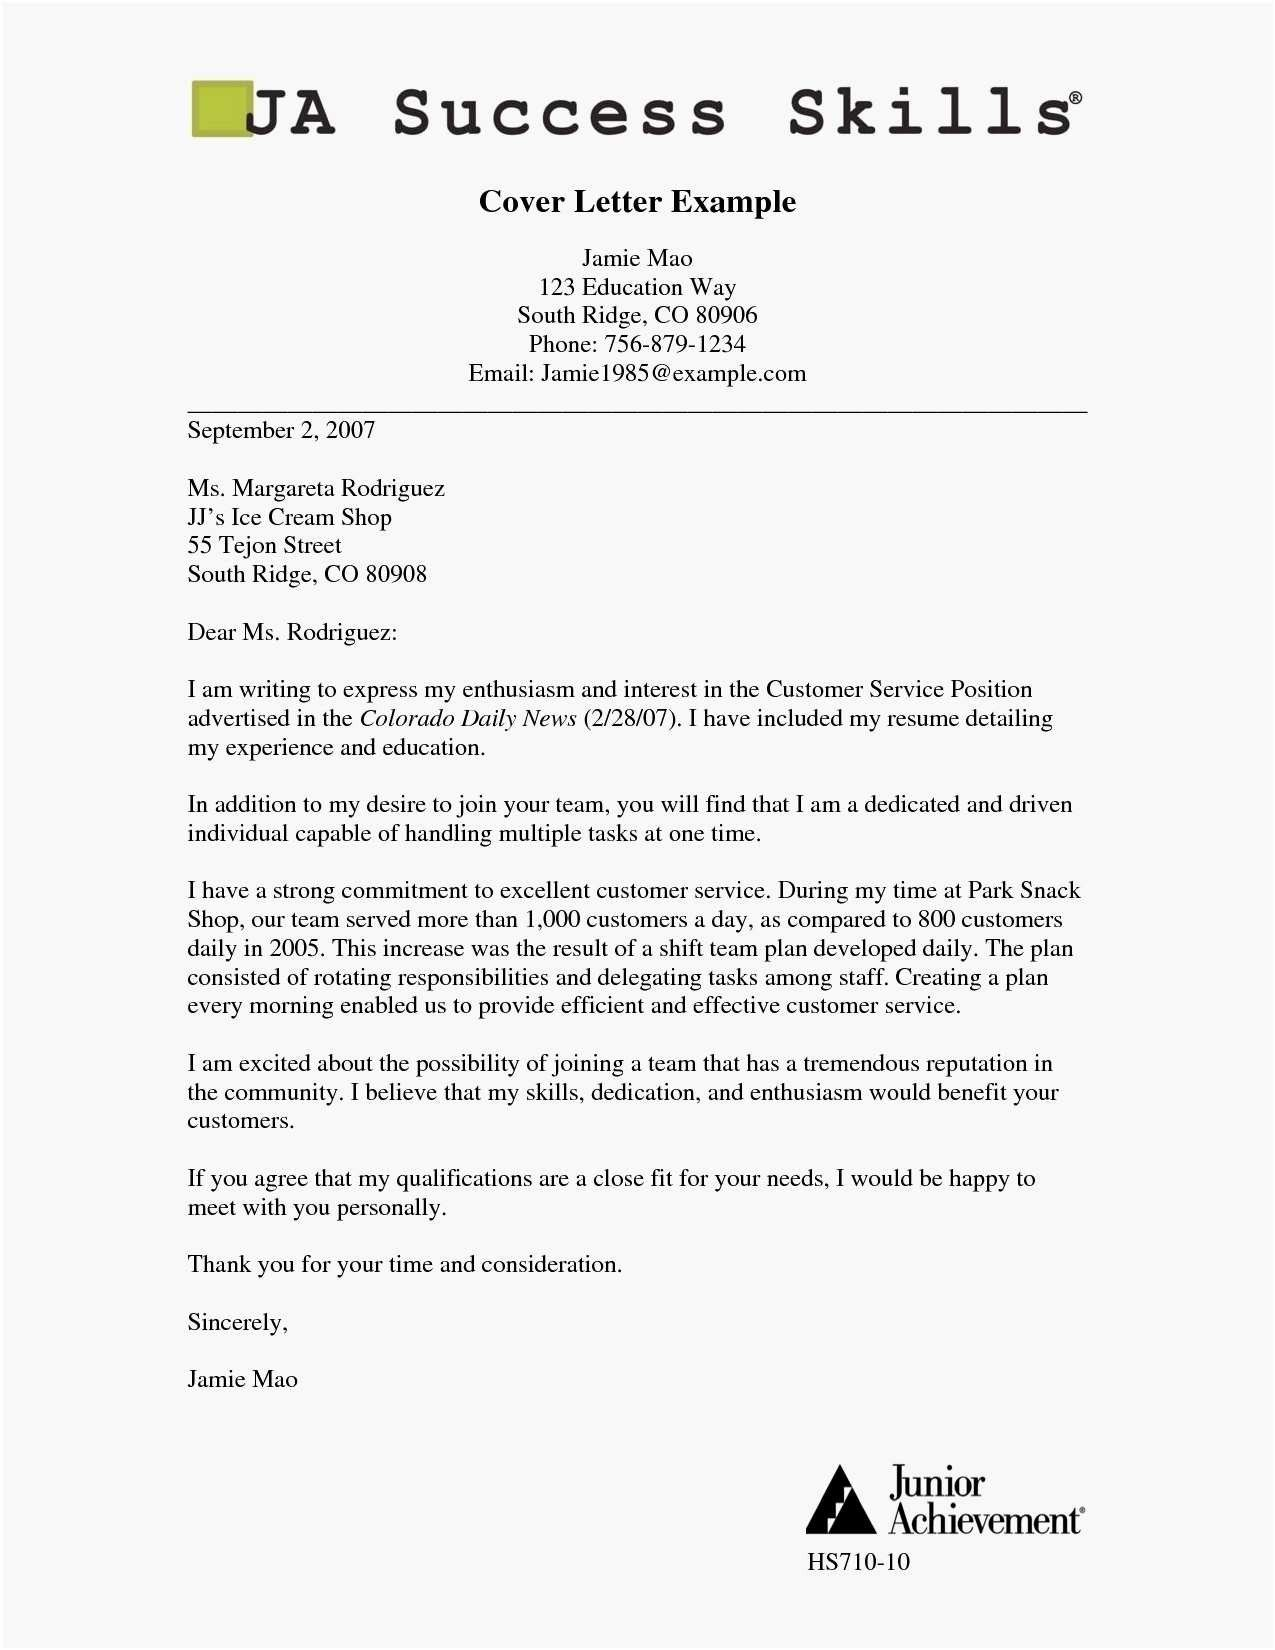 Psw cover letter free action research paper on school improvements